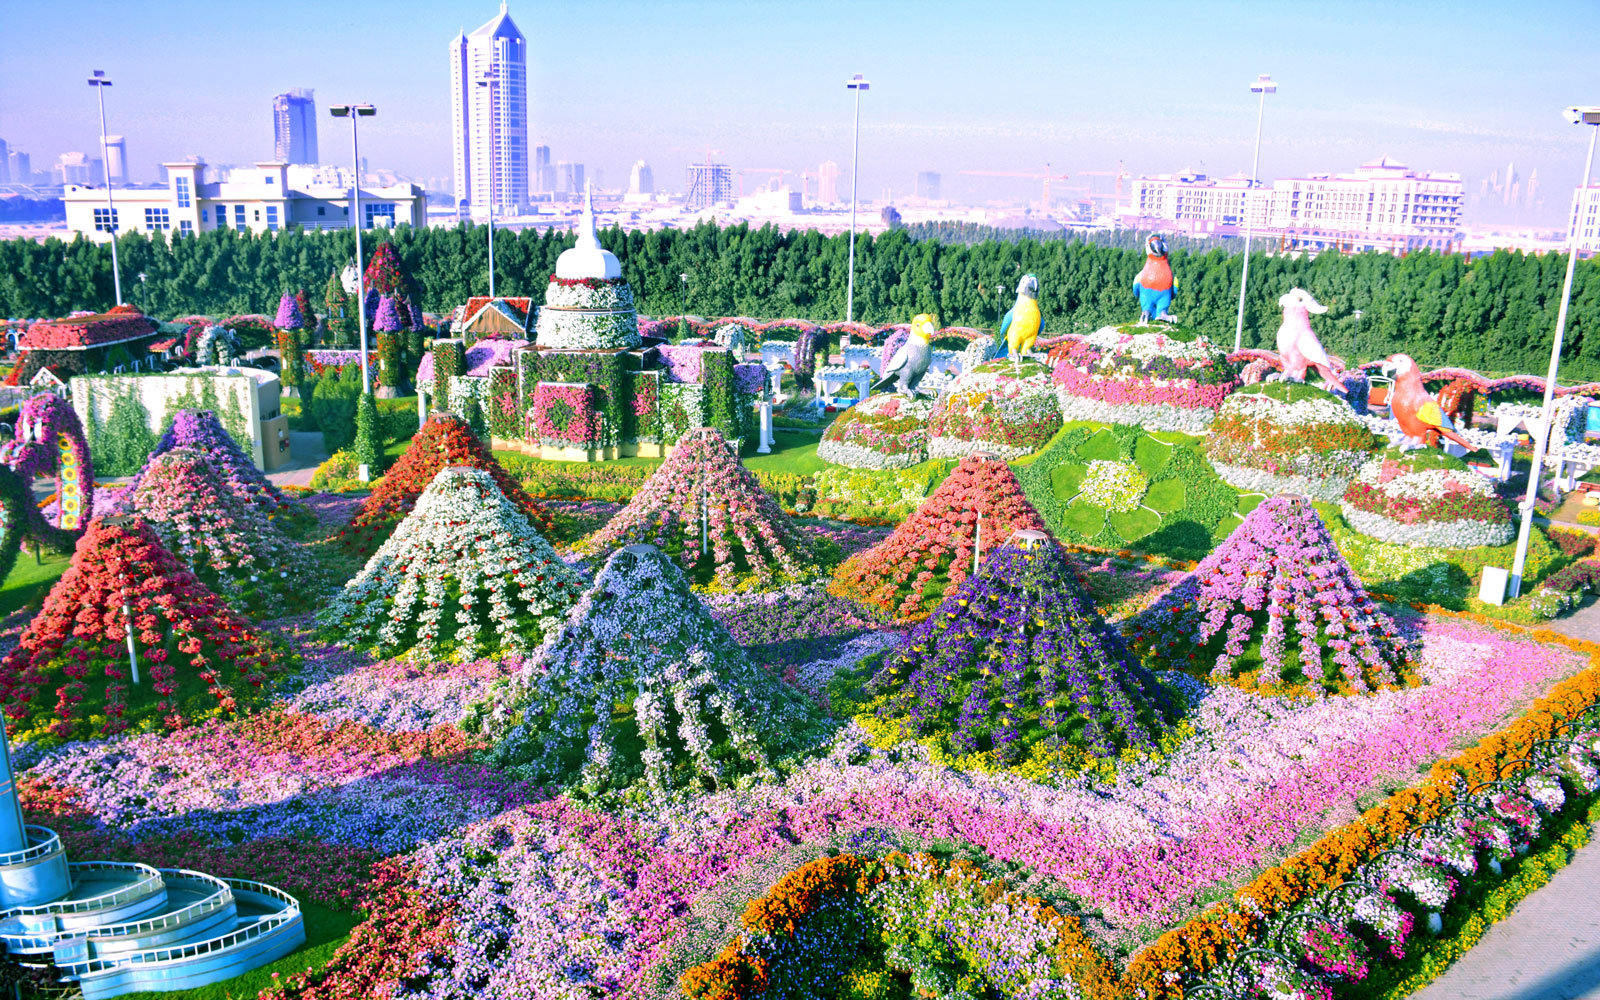 The World's Biggest Flower Garden Sits in the Middle of a ... - photo#4